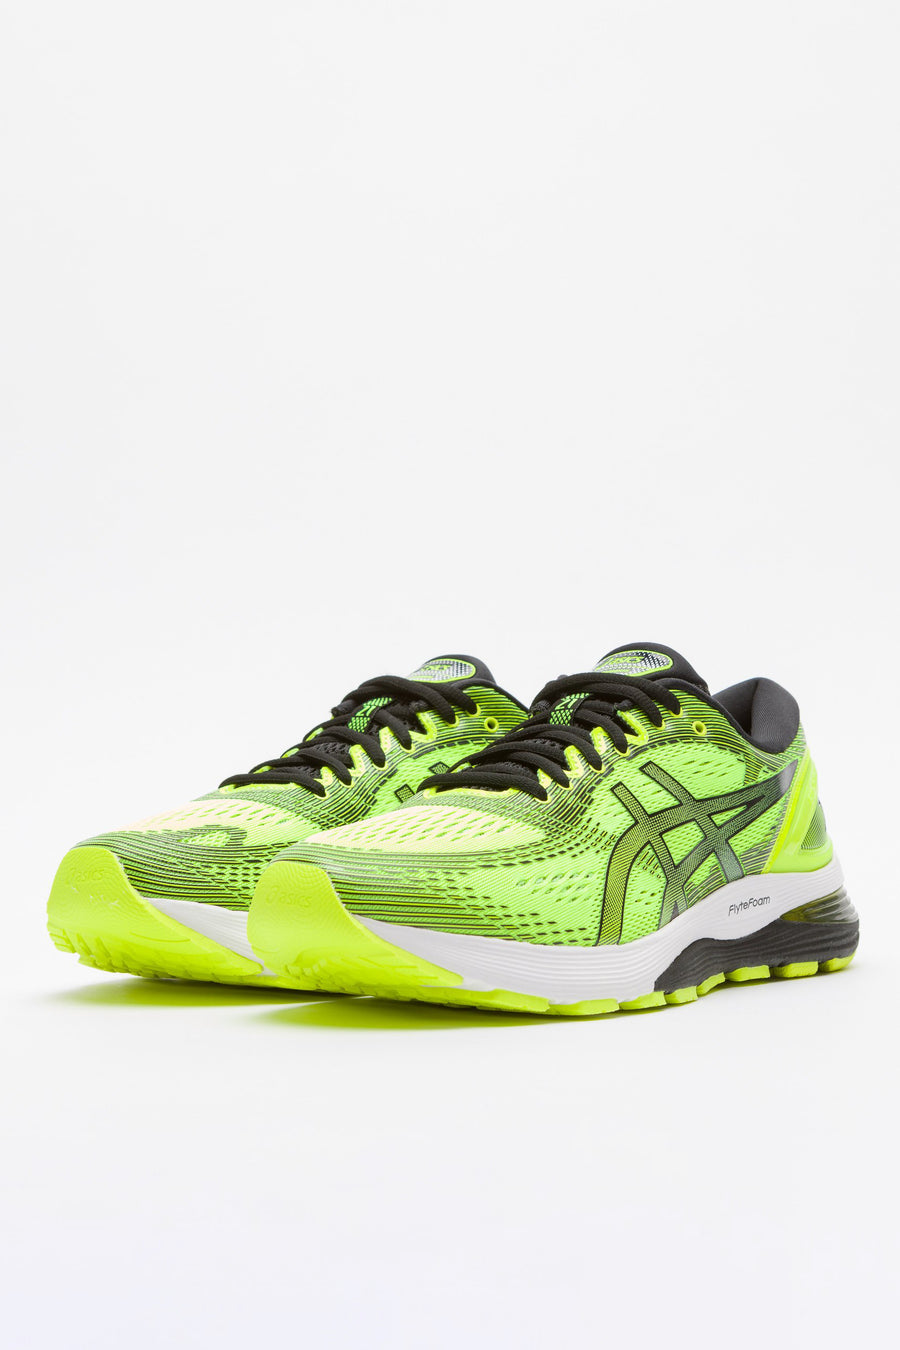 ASICS Gel Nimbus 21 in Safety Yellow/Black - Notre